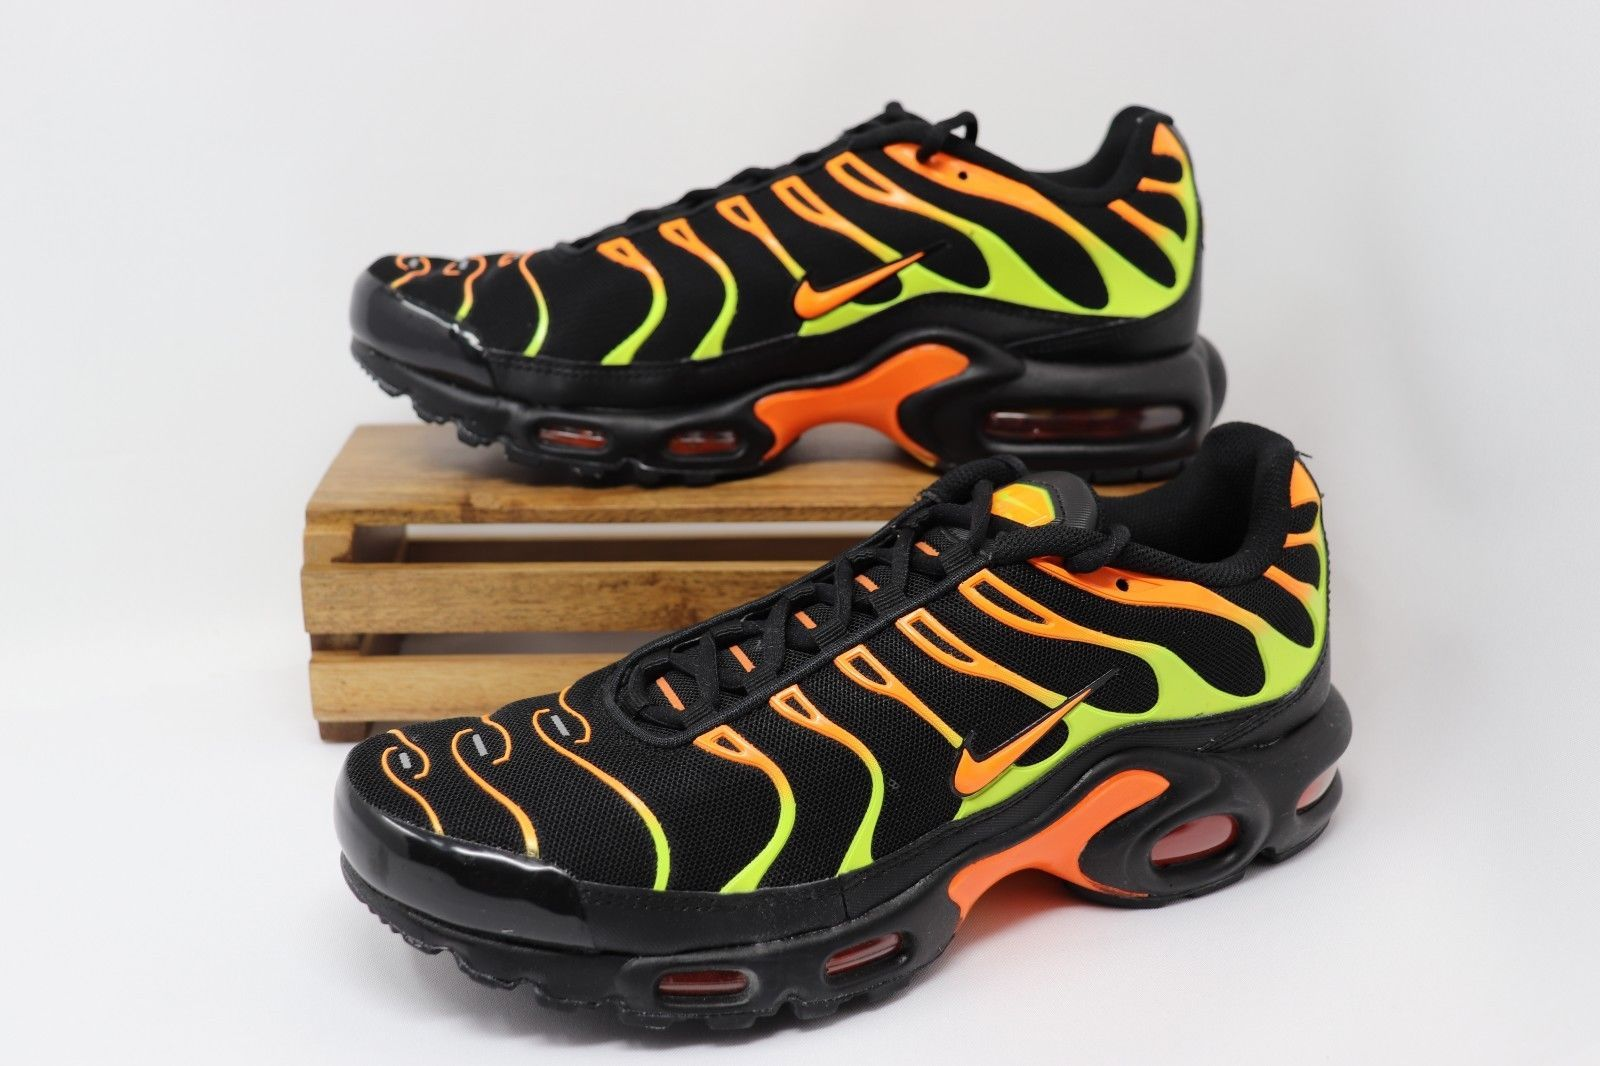 separation shoes 4e830 d0bba Nike Air Max Plus Shoes Black Volt Total Orange Green Yellow ...